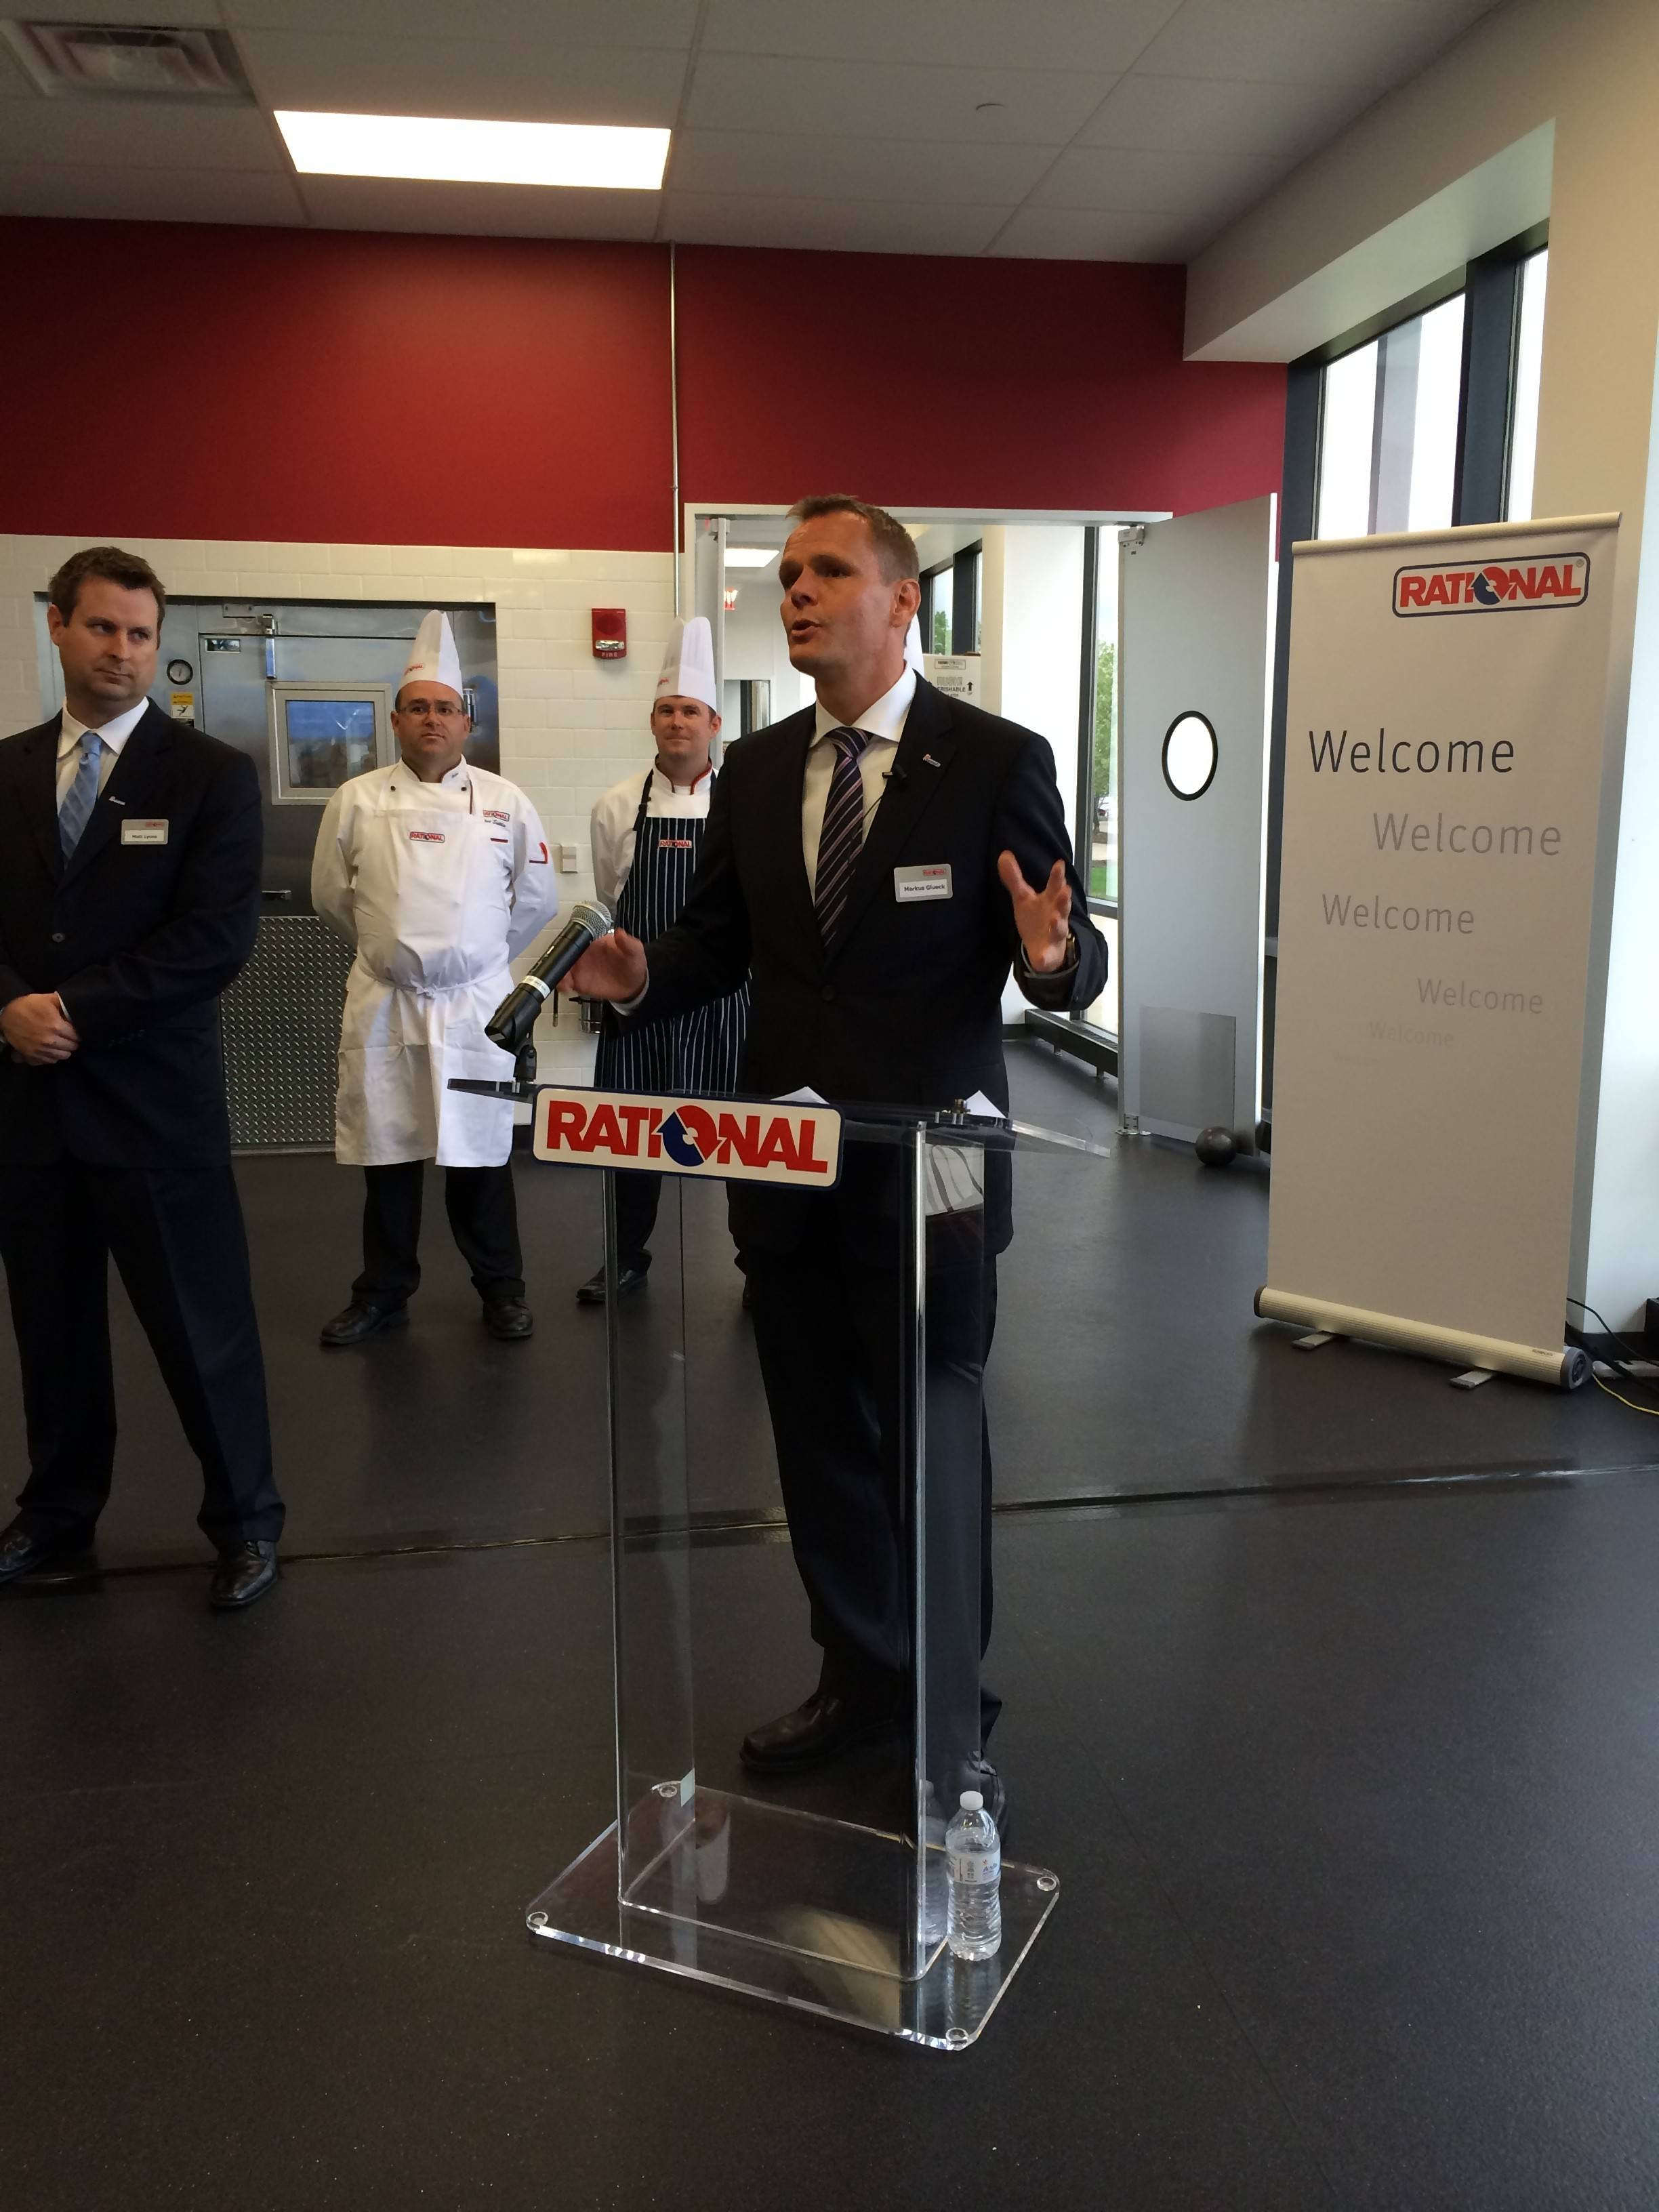 Rational USA President Markus Glueck addresses about 100 local business, chamber and village officials who welcomed the company's North American headquarters to Rolling Meadows on Thursday.